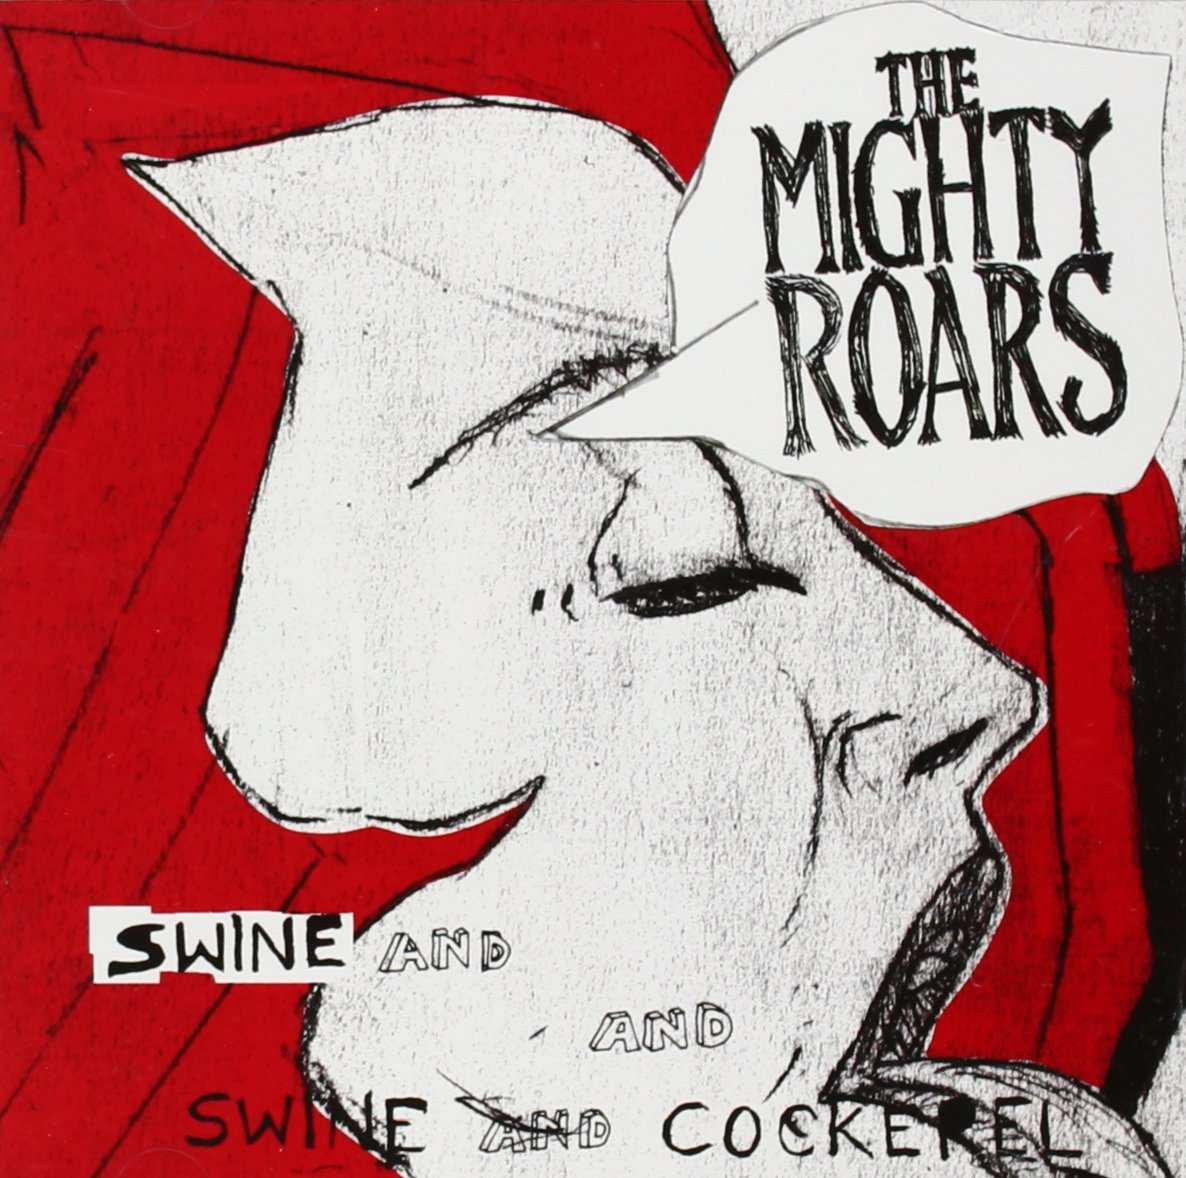 Chris Sheldon, The Mighty Roars Swine and Cockerel - album